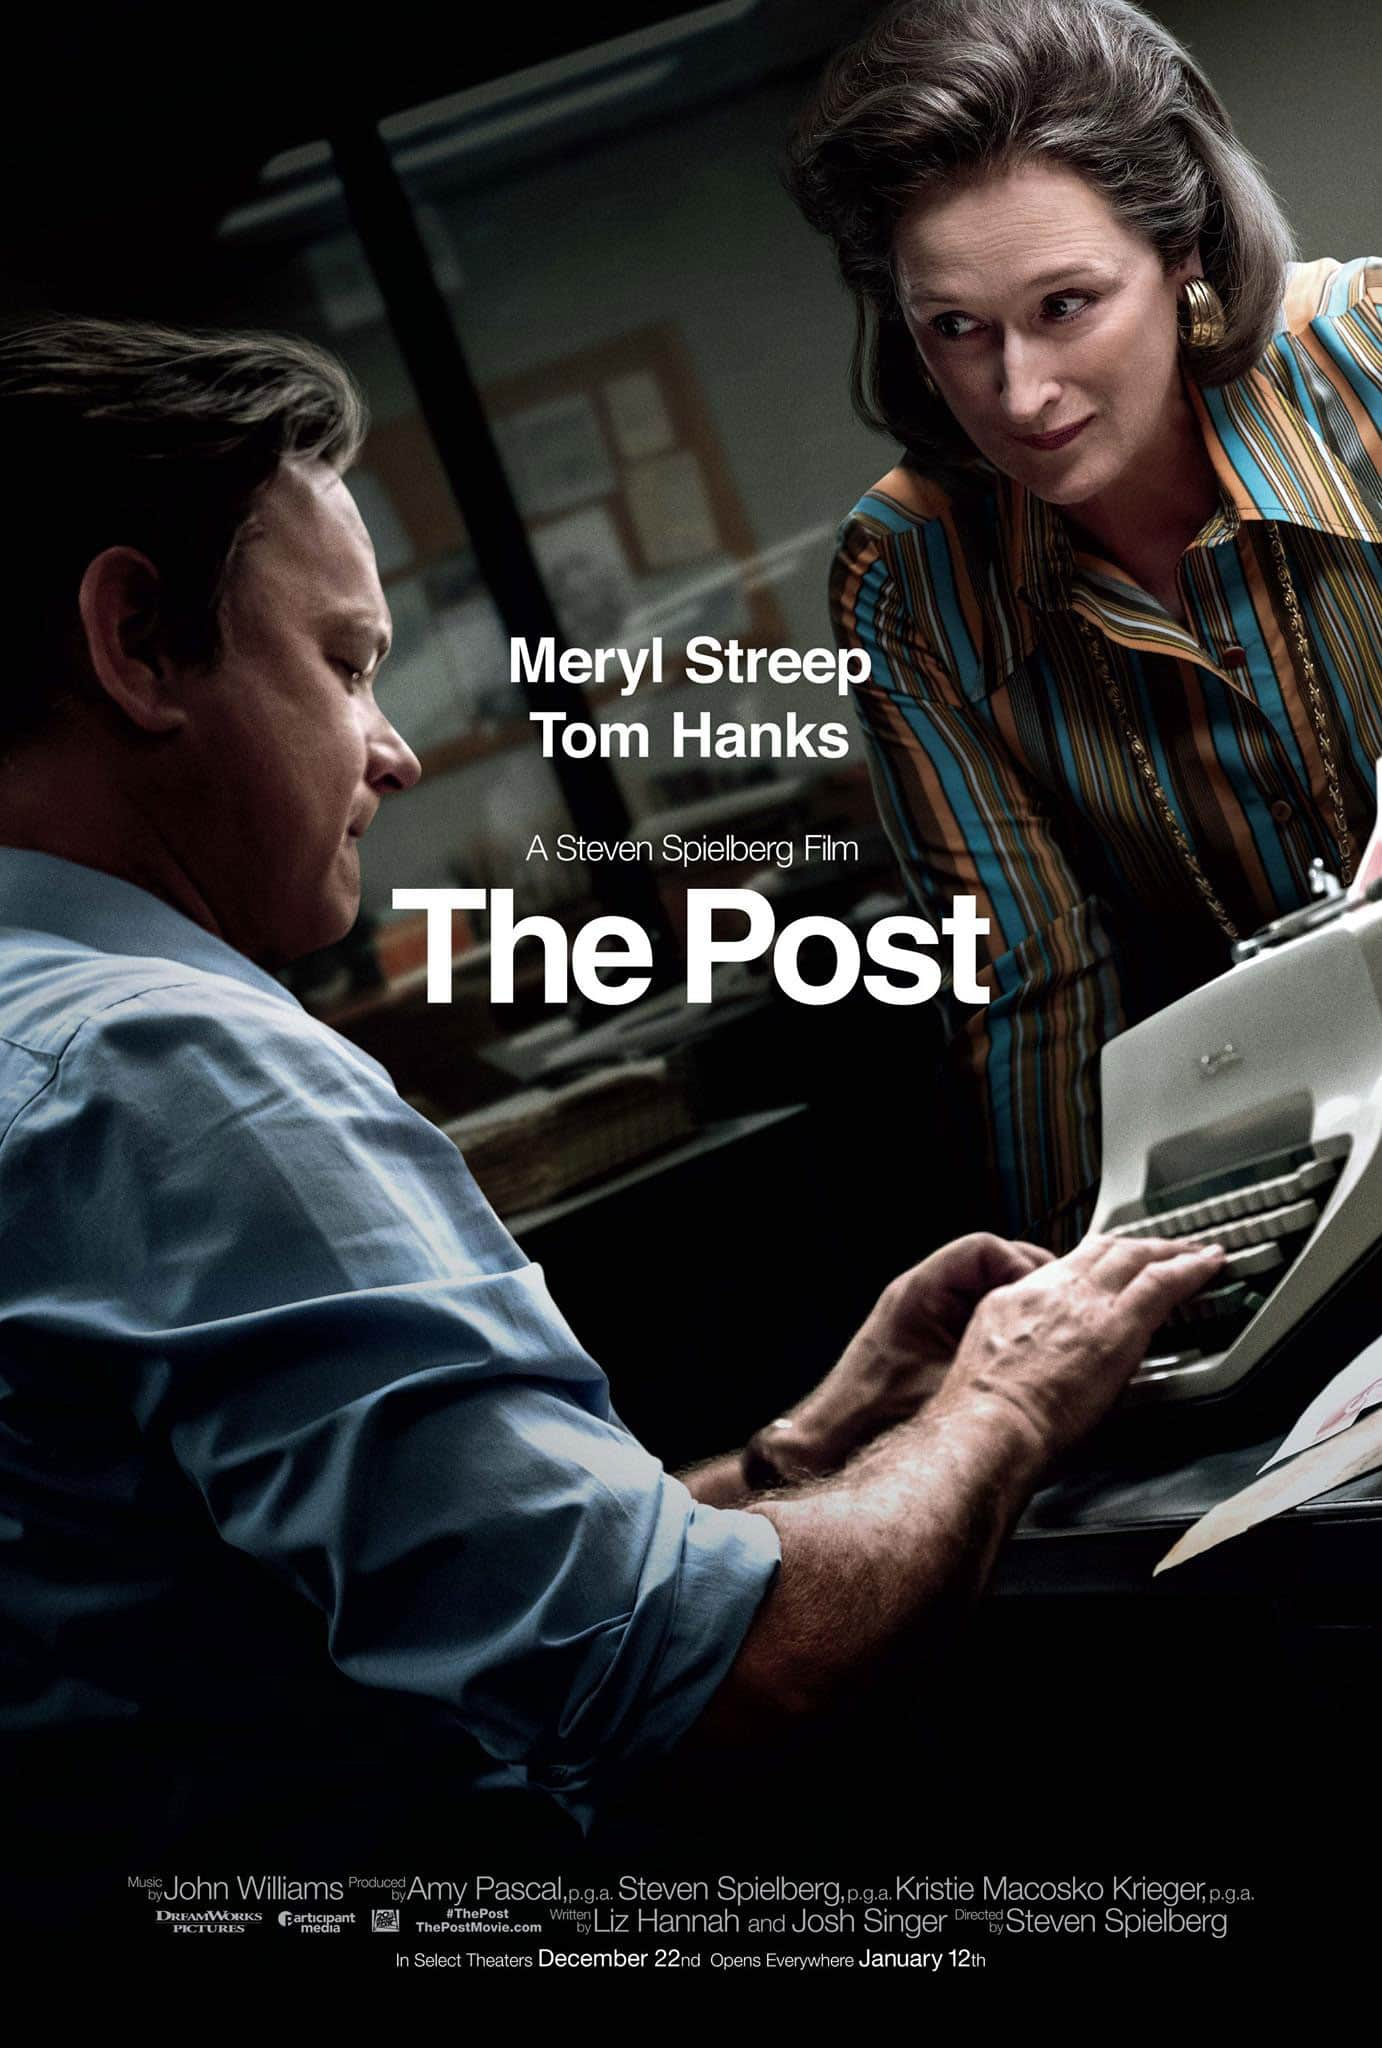 Buy a Ticket to See THE POST, Get a Free 6 Week Subscription to the Washington Post